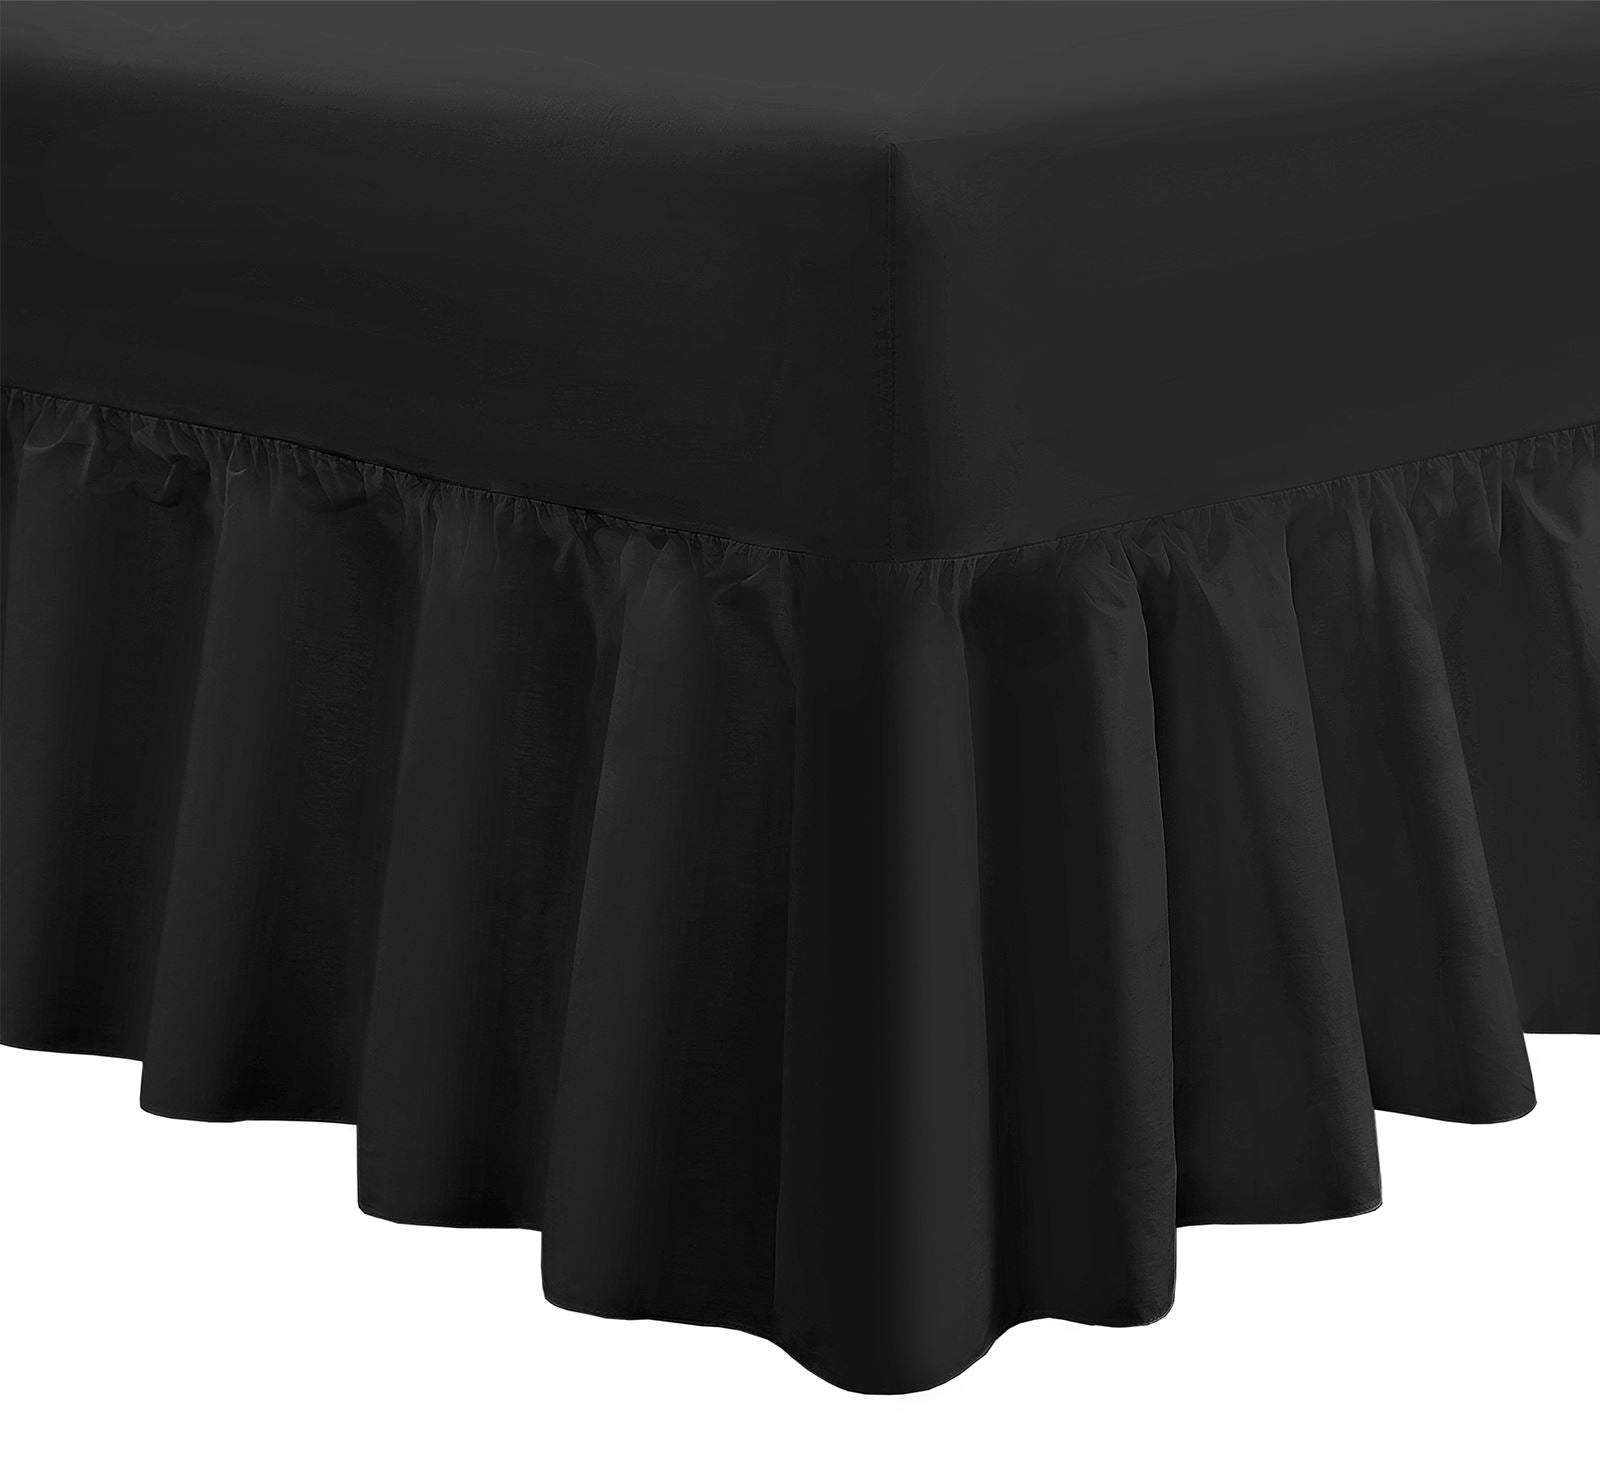 Black Fitted Valance Sheet Single Bed Size Frilled 25 Inch Total Drop